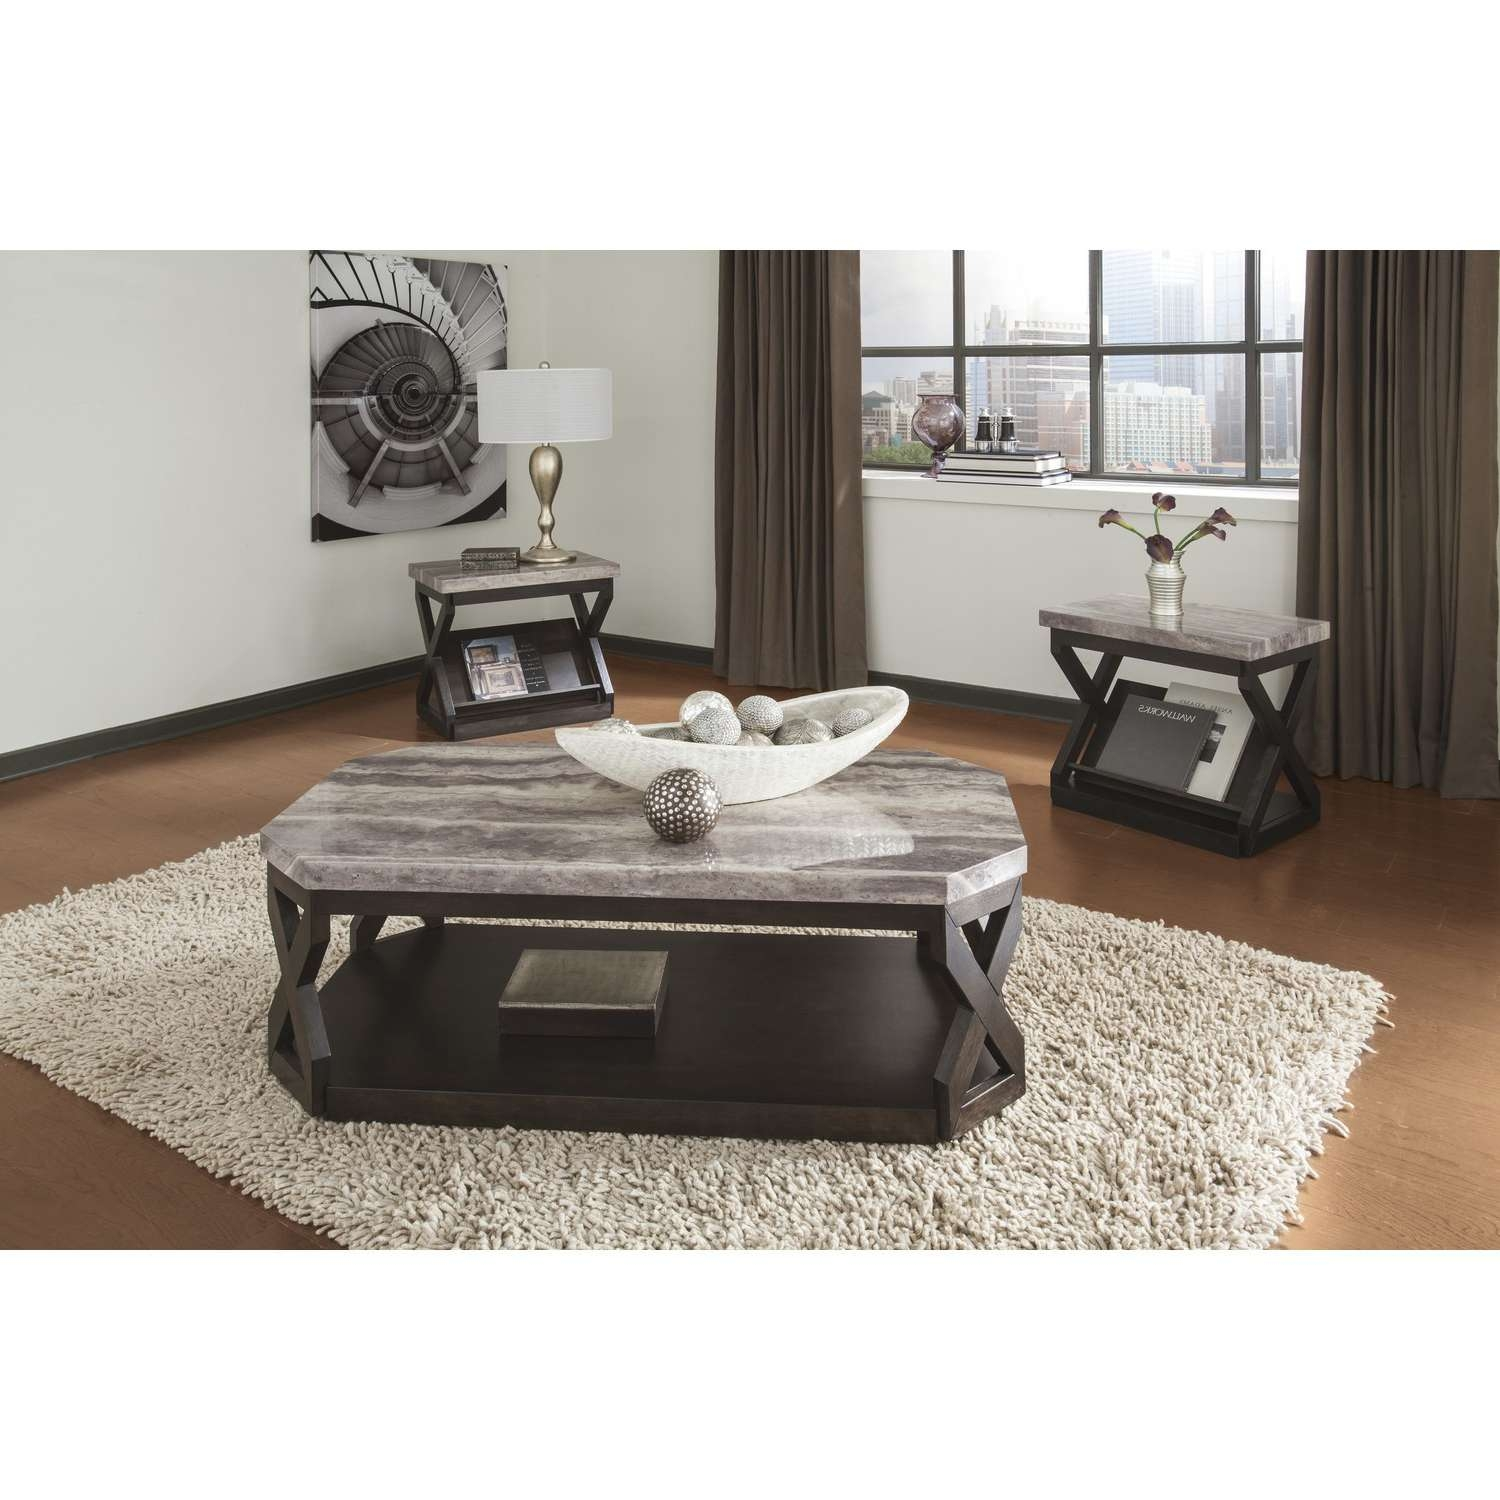 Popular Grey Coffee Table Sets For Furniture Elegant Granite Top Coffee Table Sets For Living Room (View 18 of 20)